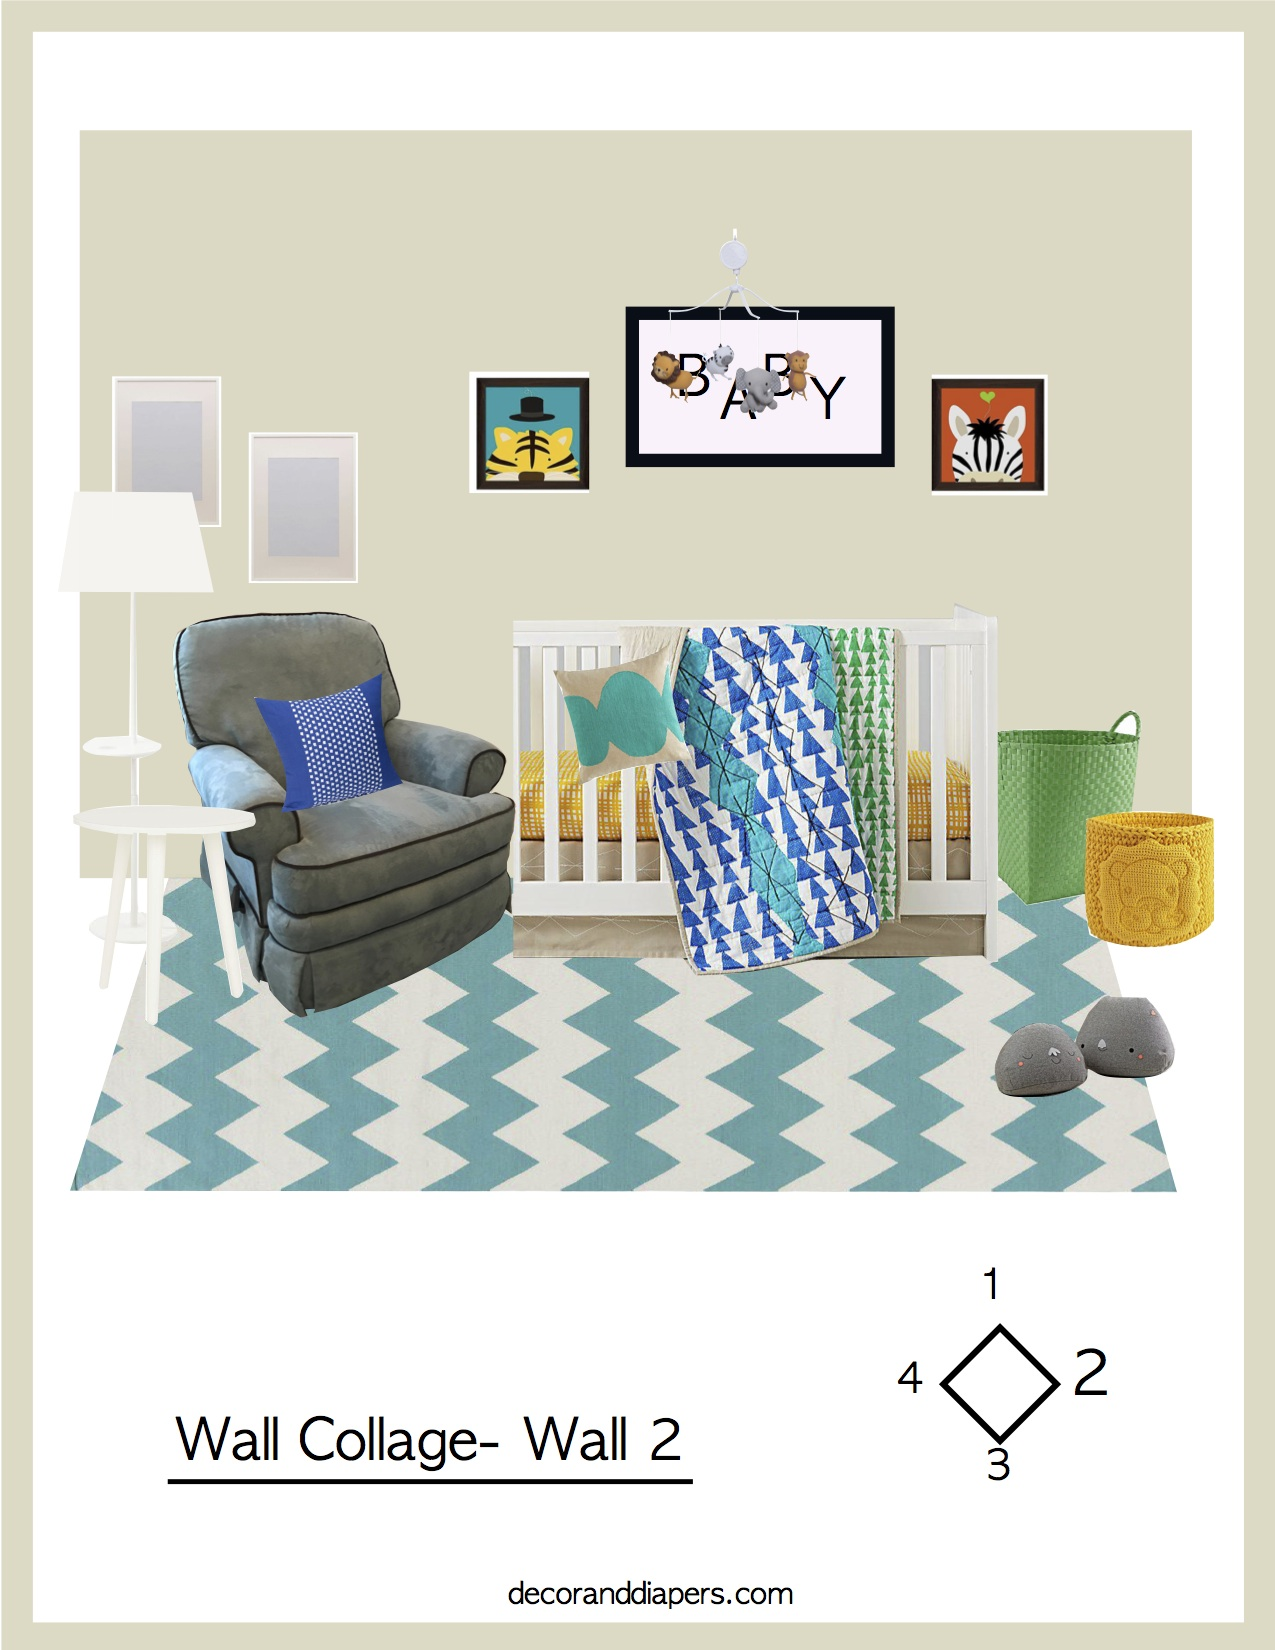 A colorful visualization of the feature wall in your nursery